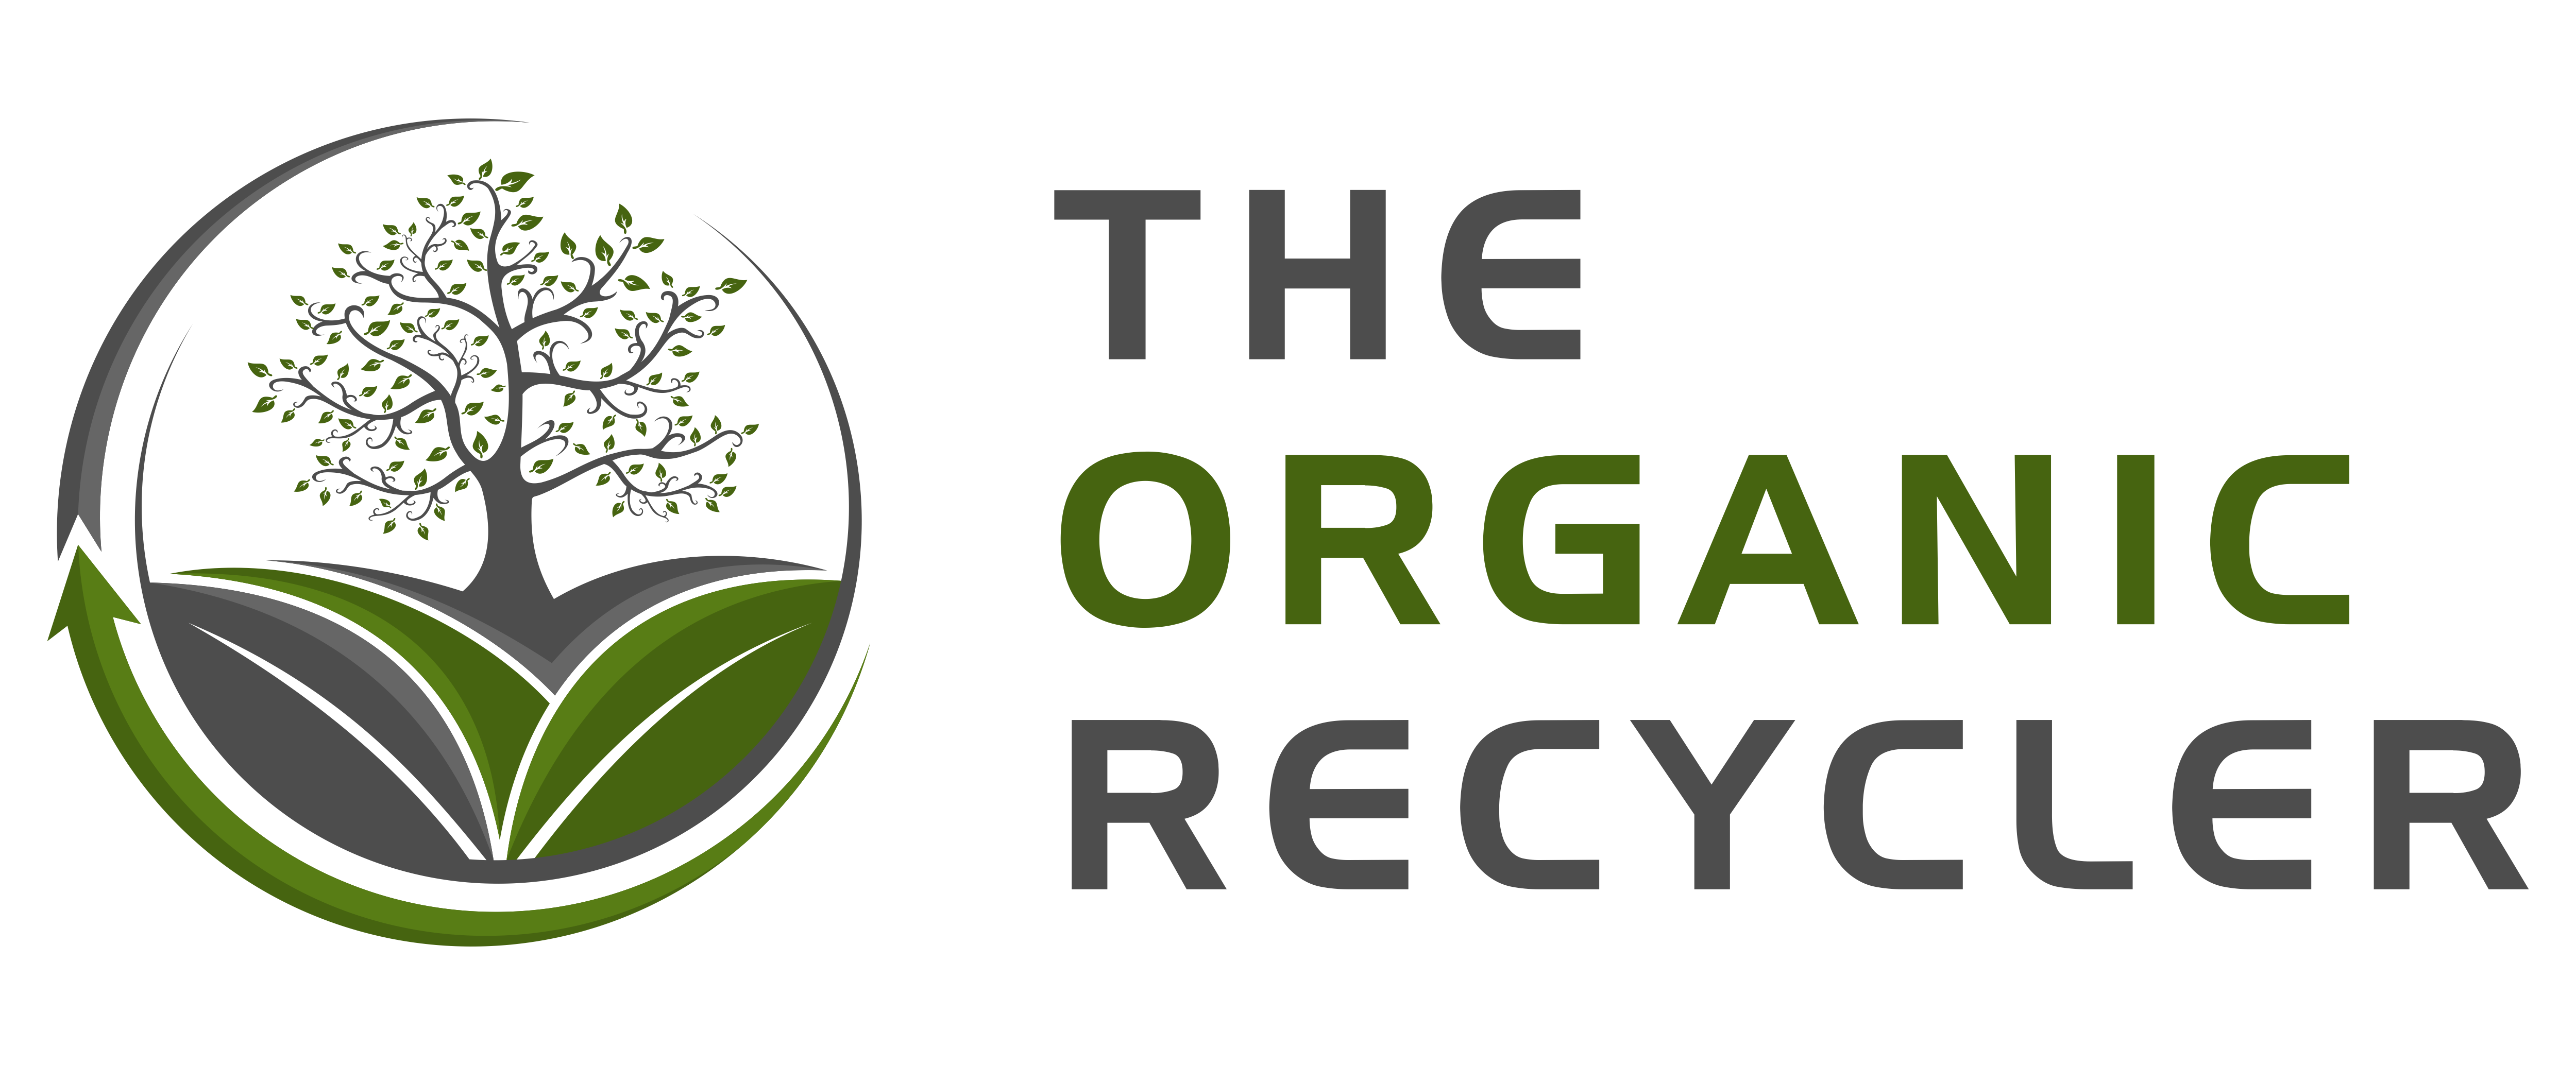 The Organic Recycler